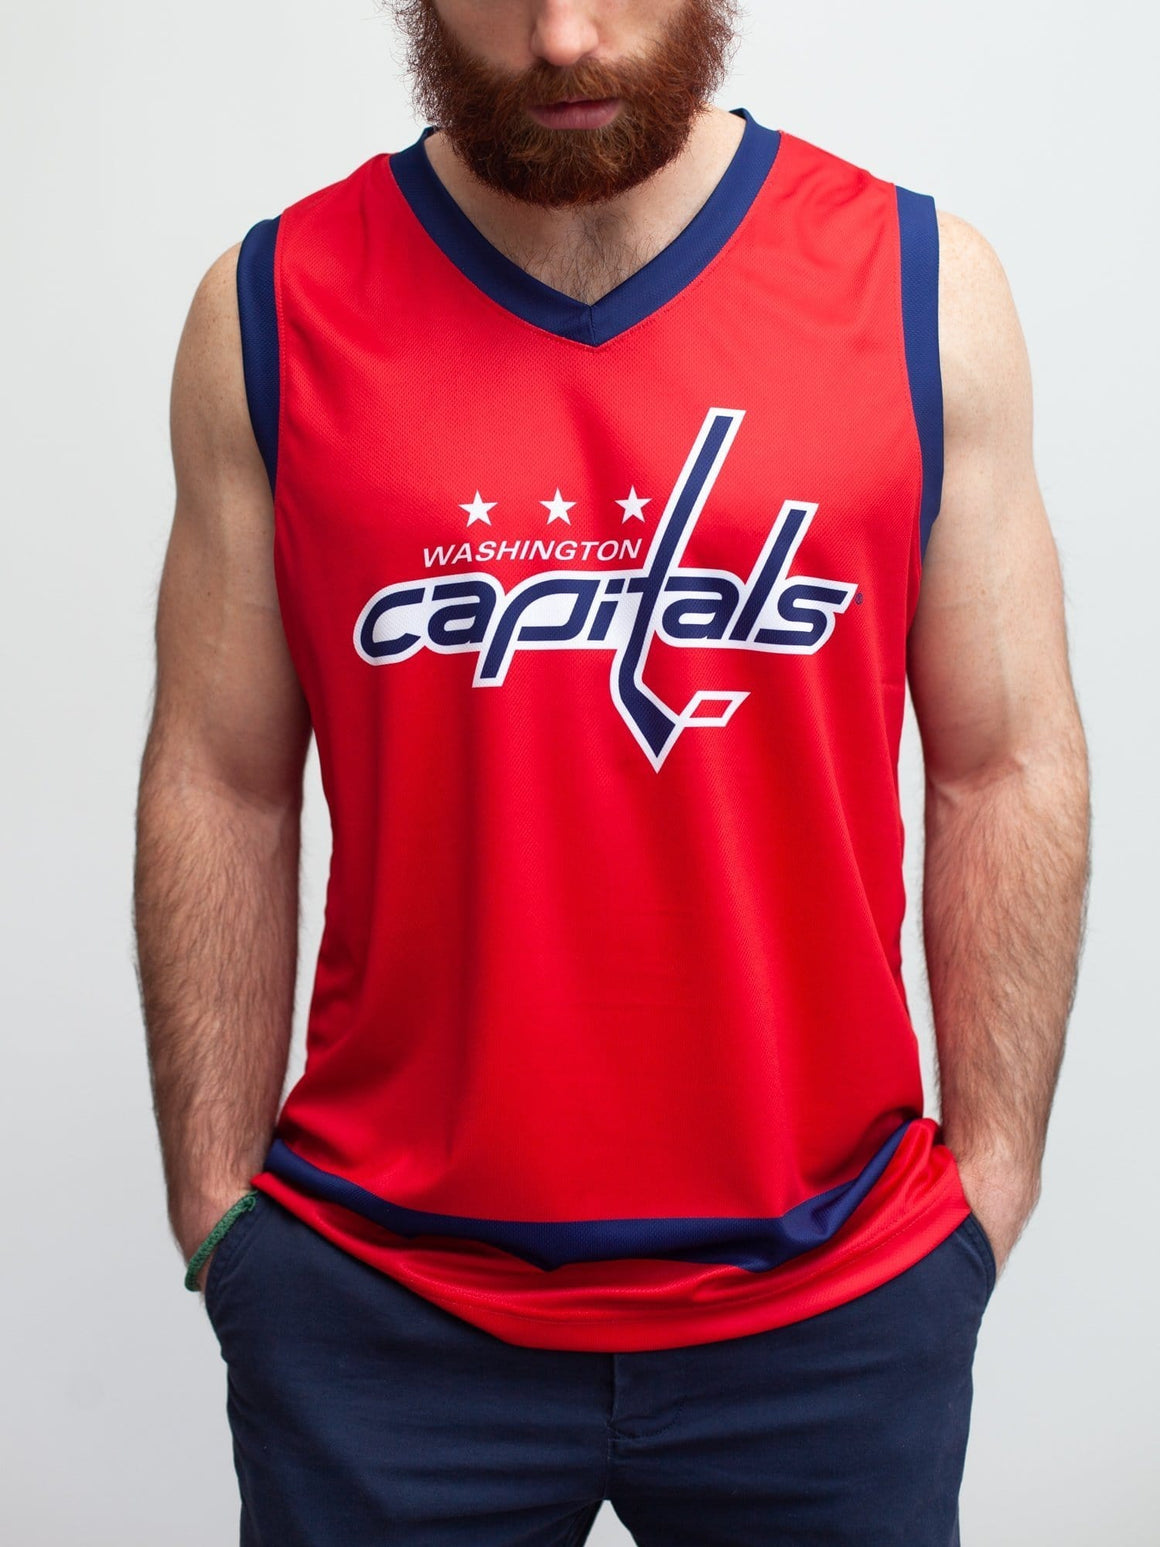 Washington Capitals Hockey Tank